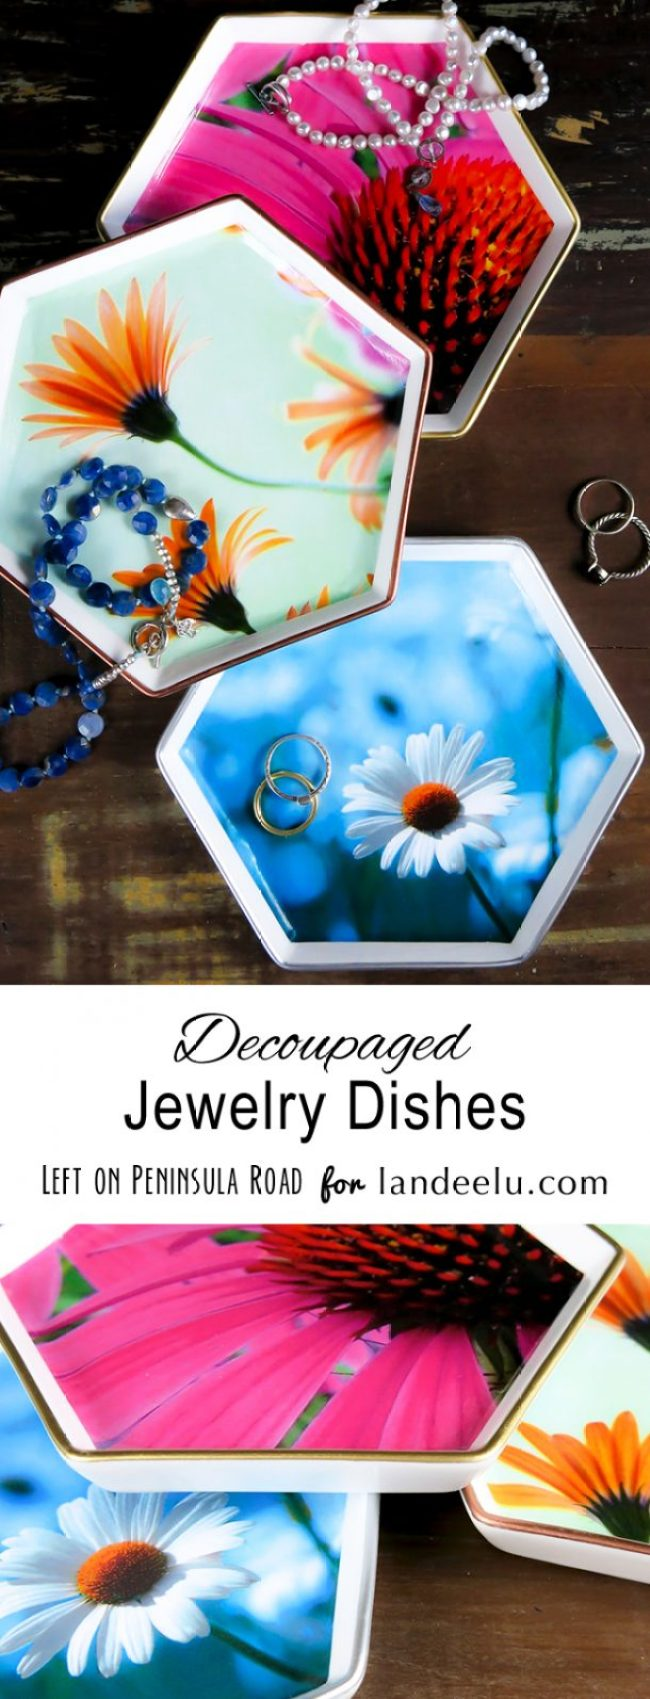 Decoupaged-Jewelry-Dishes_collage_LeftonPeninsulaRoad_650px